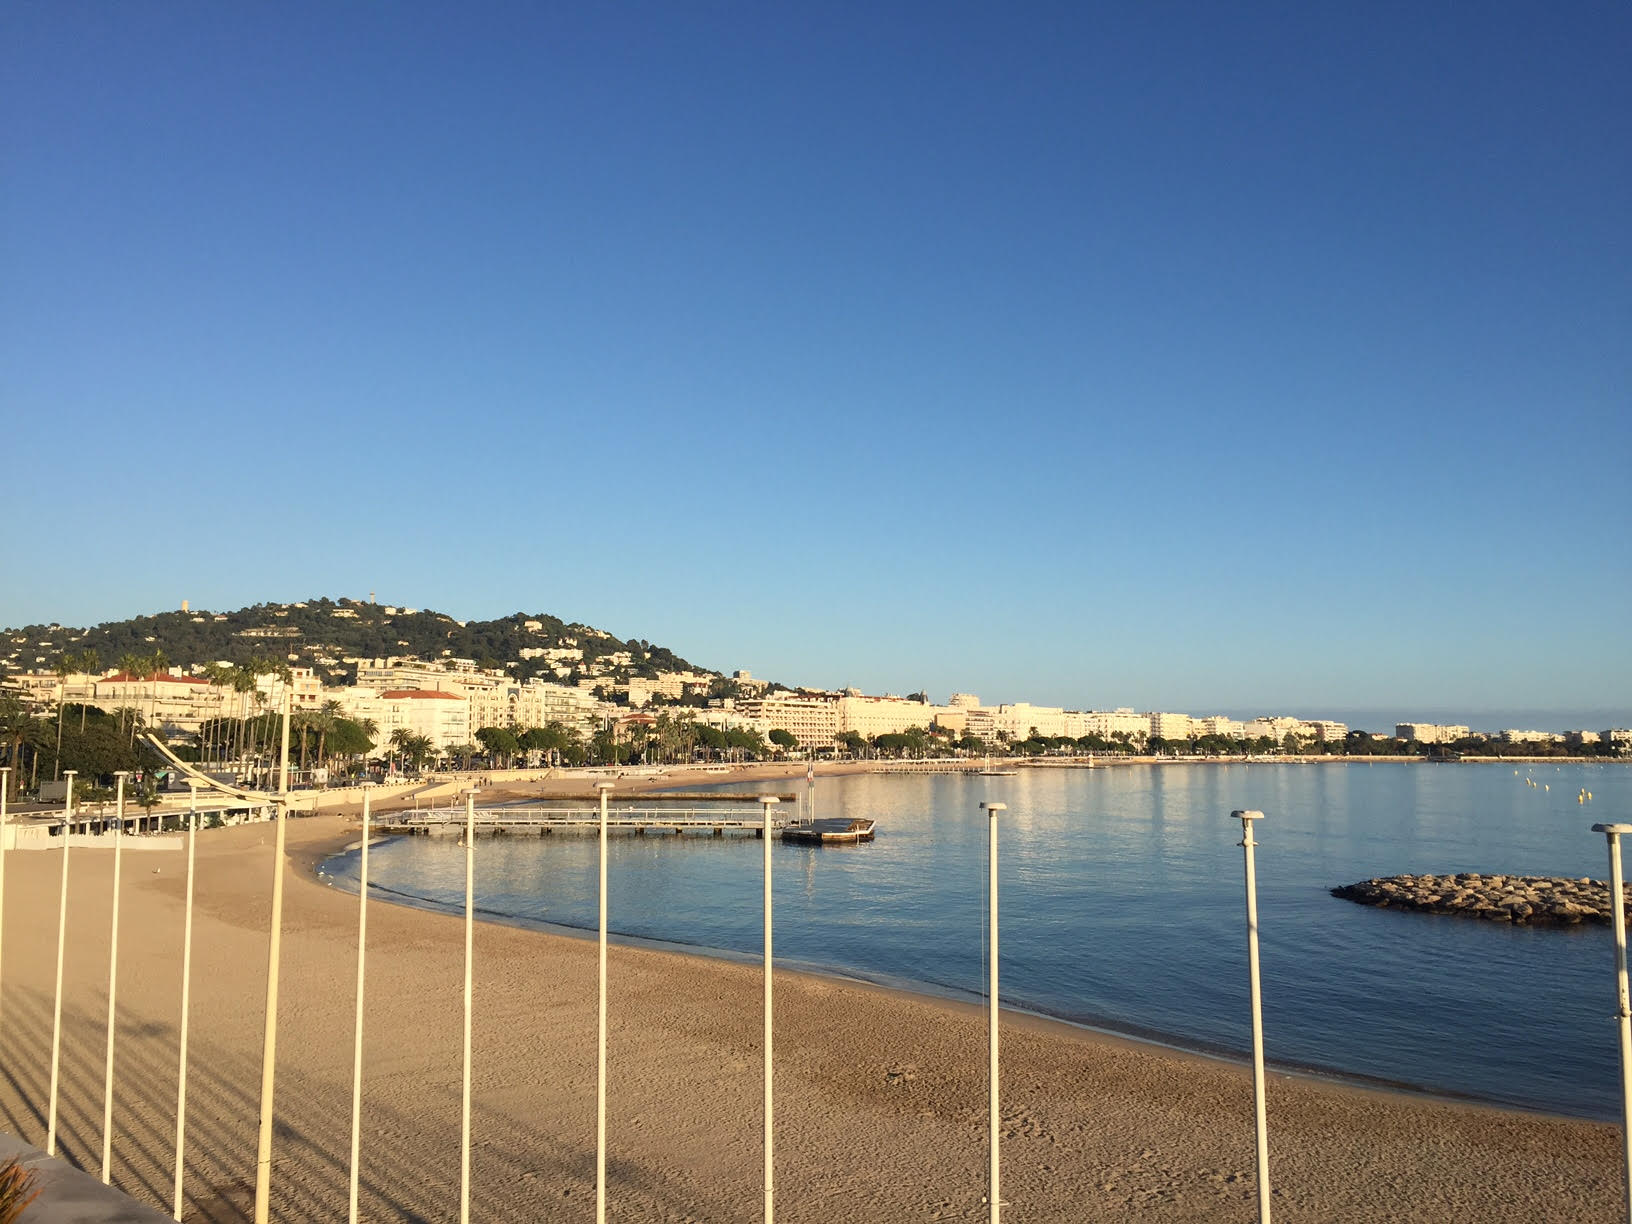 Cannes for one of my favorite conferences of the year, ILTM